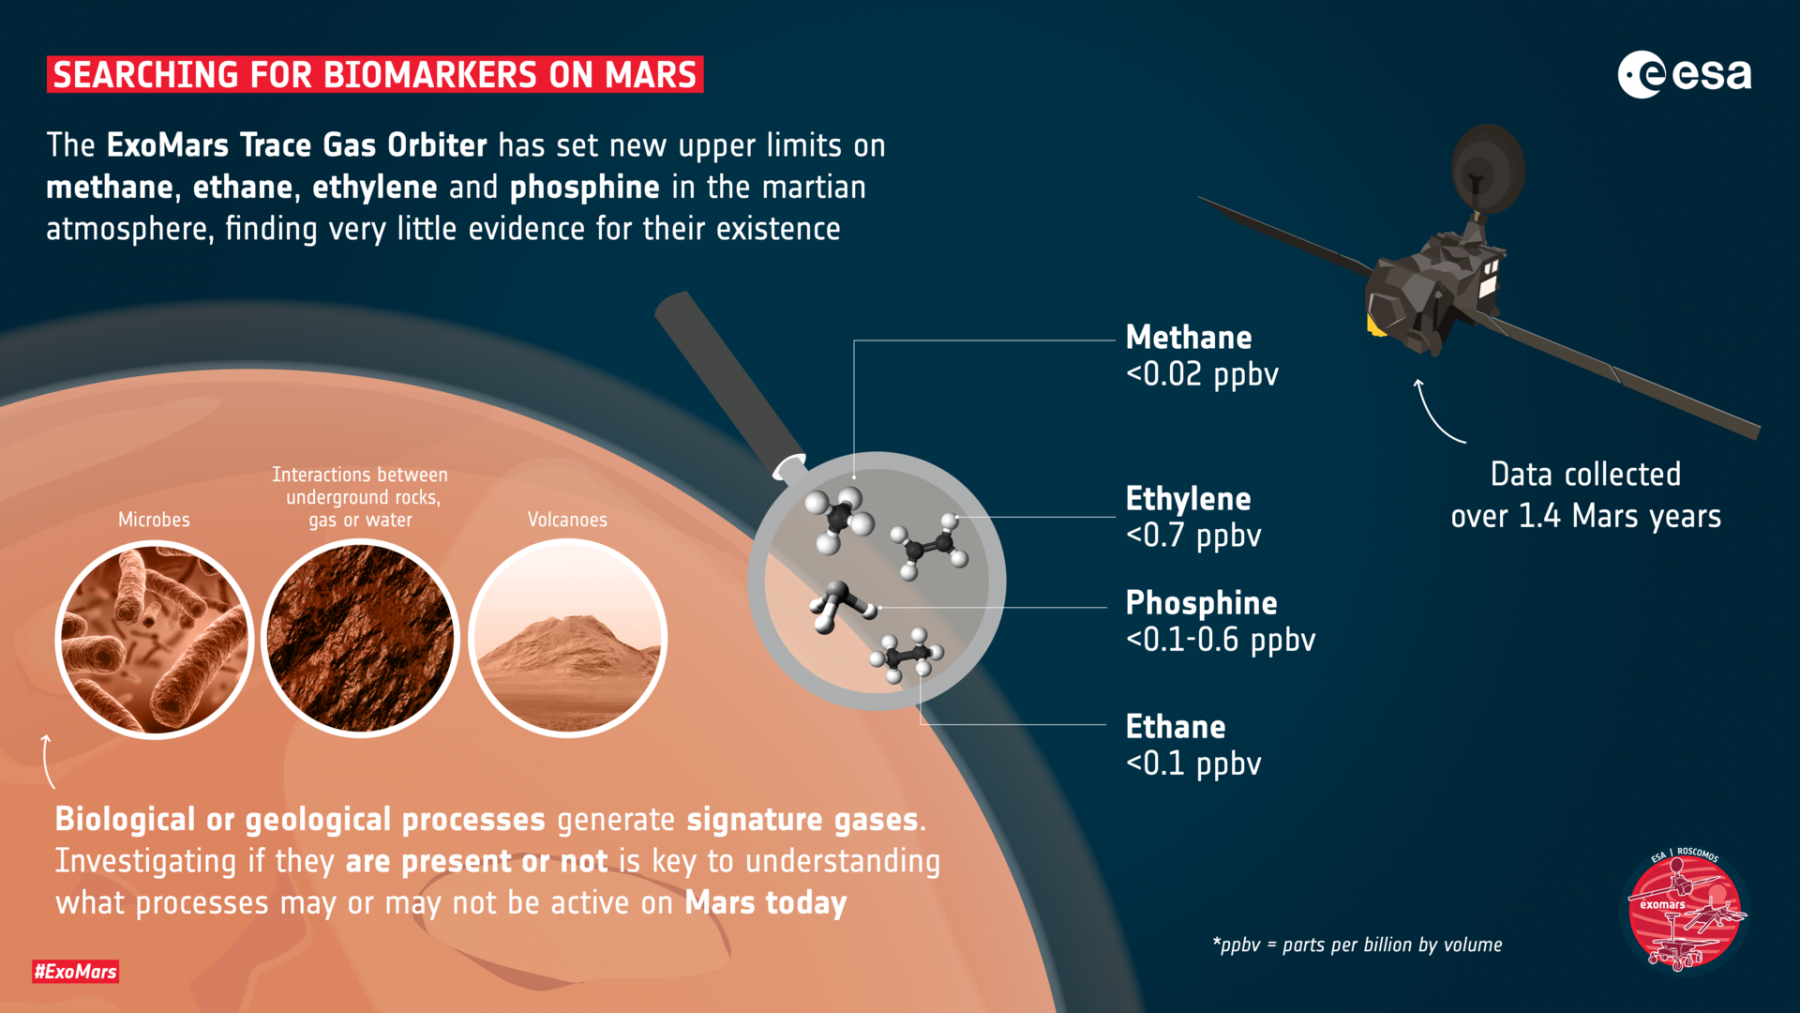 Searching for other biomarkers on Mars. Credit: ESA